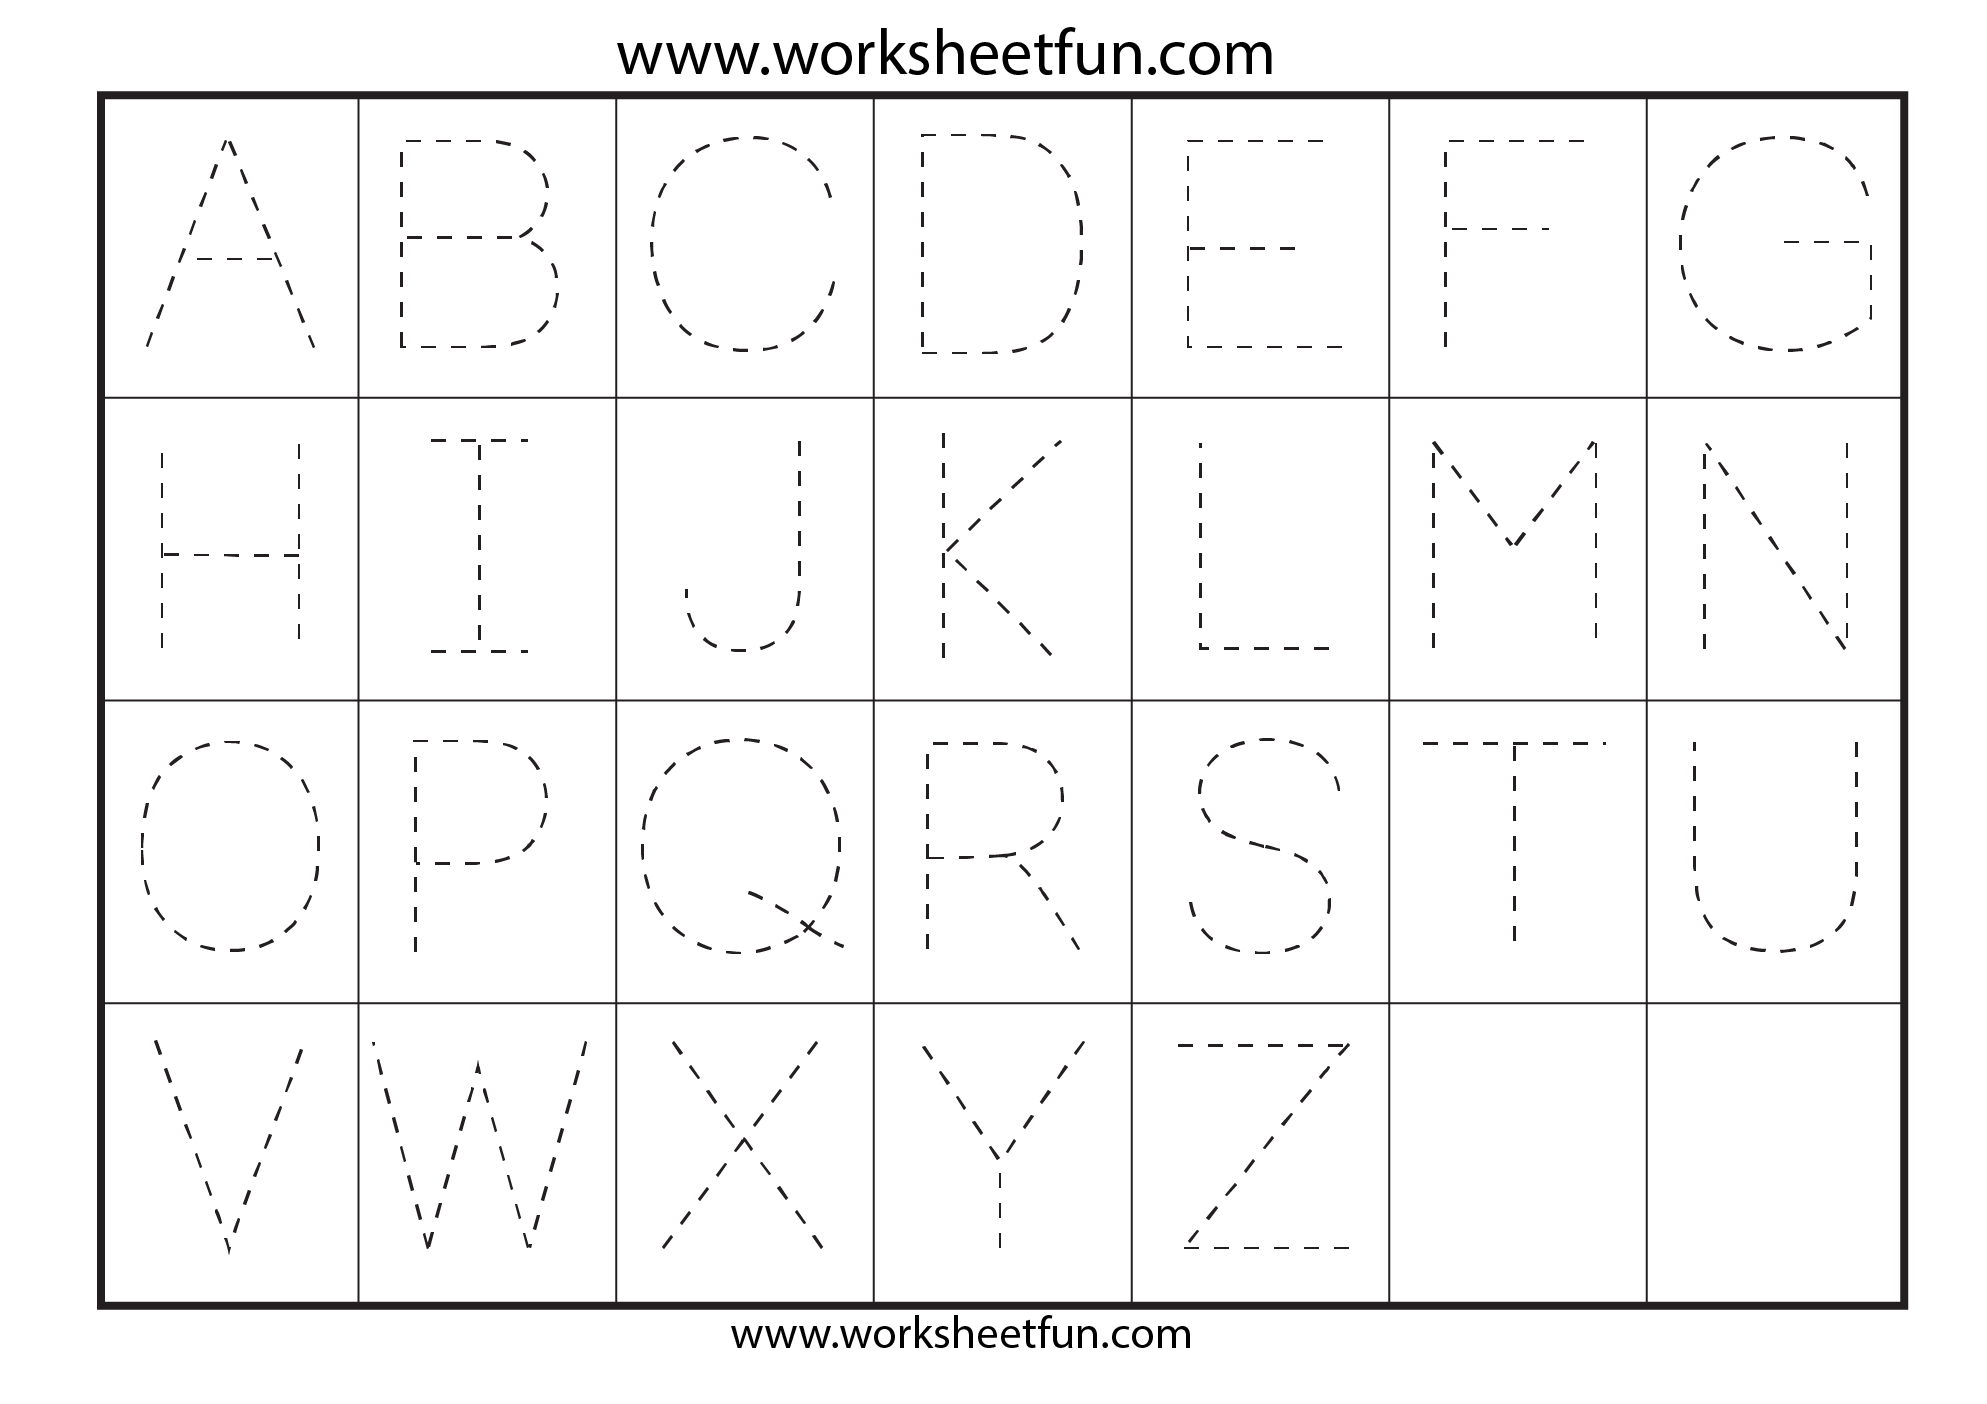 Worksheets Alphabet Tracing Worksheet worksheet tracing sheets for alphabet wosenly free 17 images about tot school on pinterest printable letters count